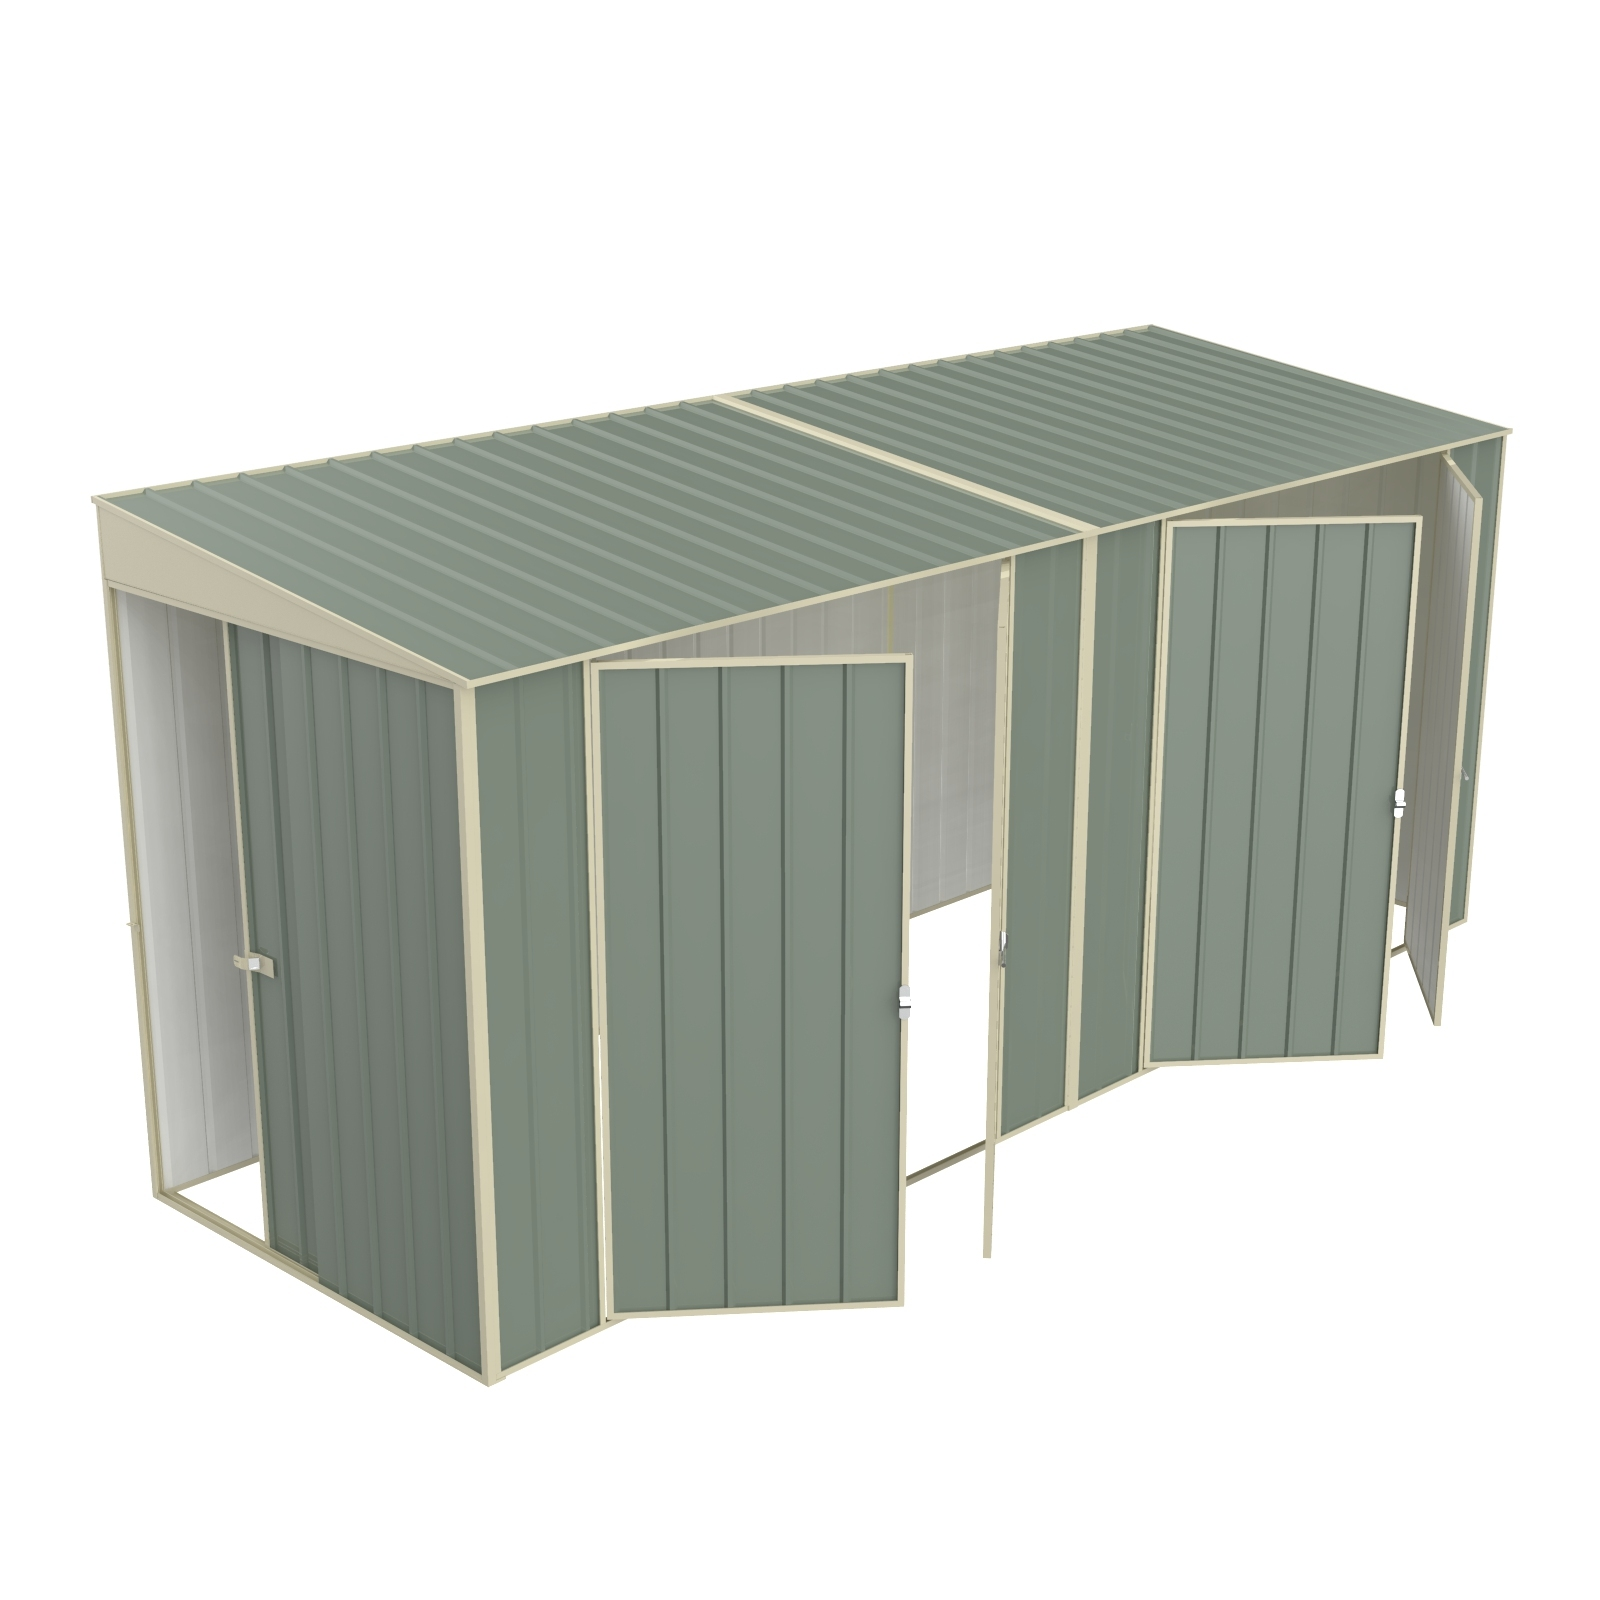 Build-a-Shed  1.5 x 4.5 x 2.0m Skillion Double Plus Double Hinged Side Doors Shed - Green